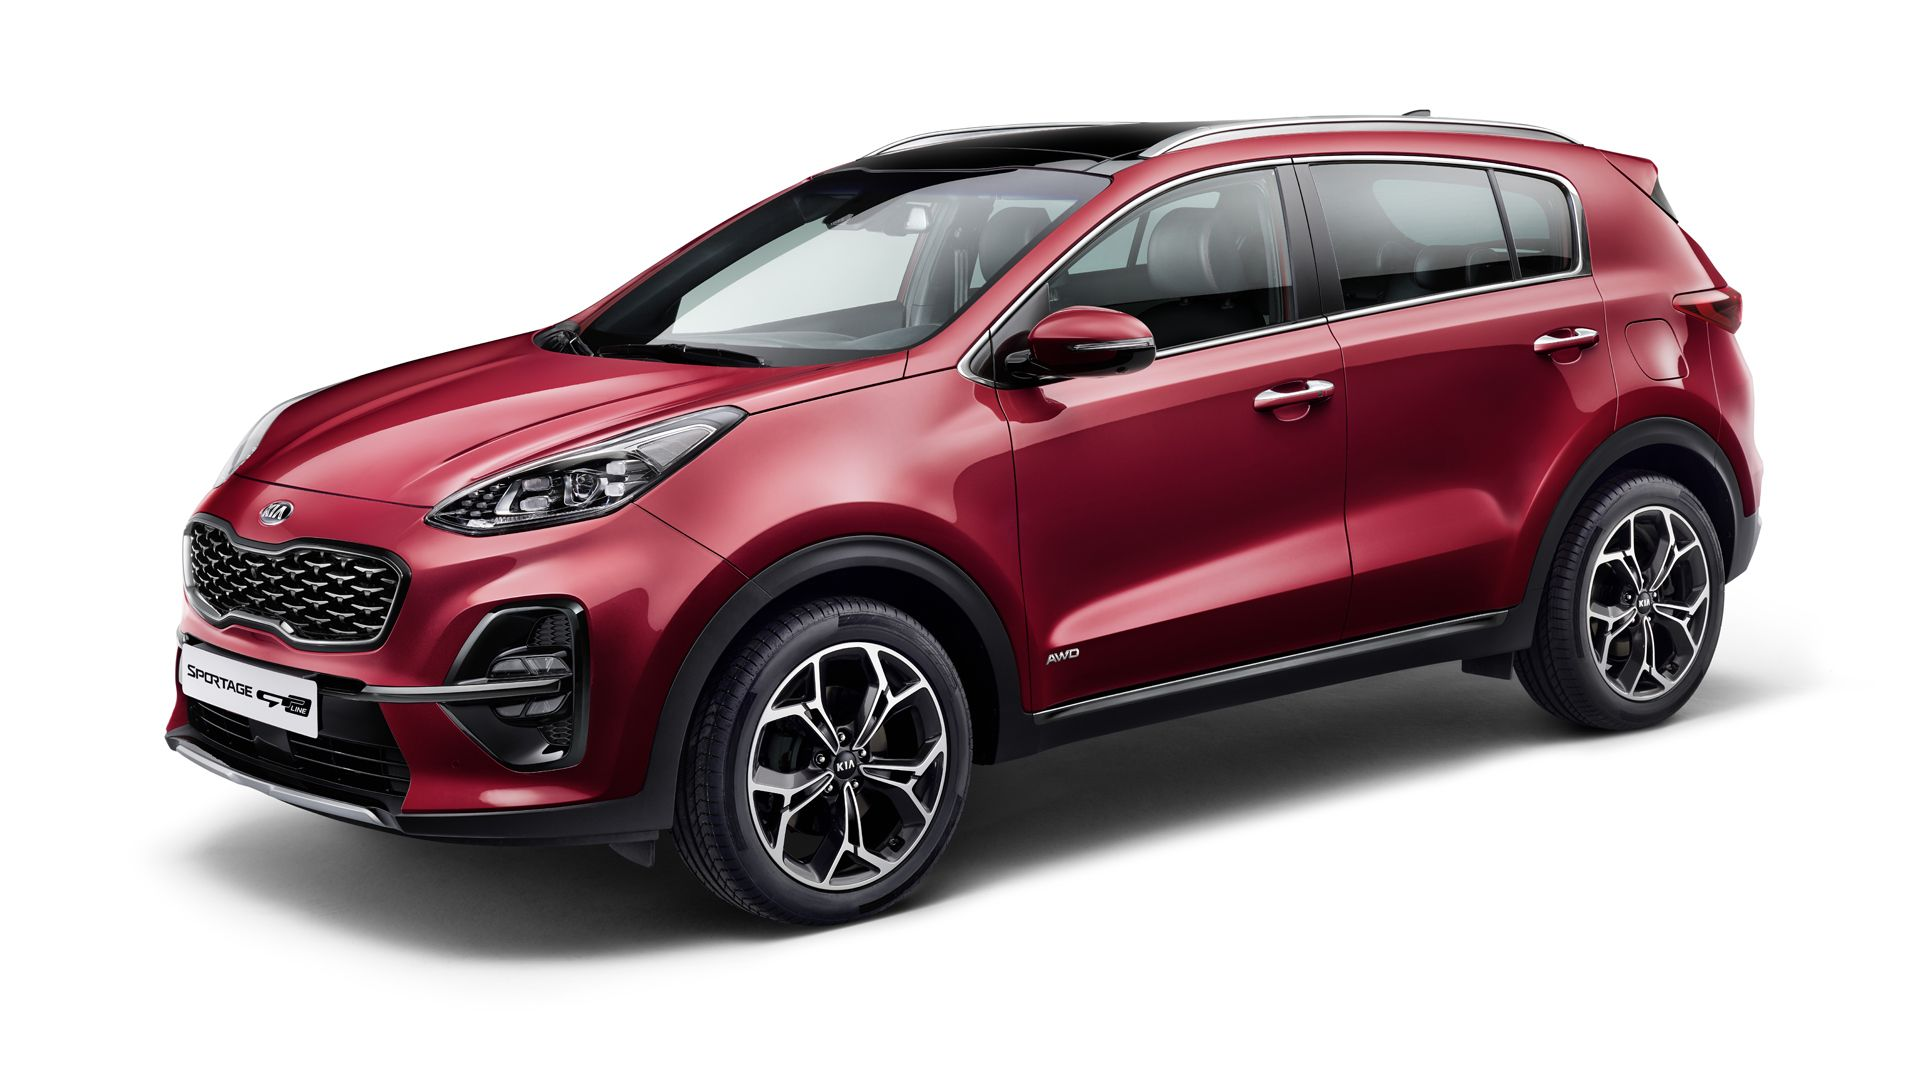 Kia Has Debuted A Facelifted Sportage For Europe But It S The